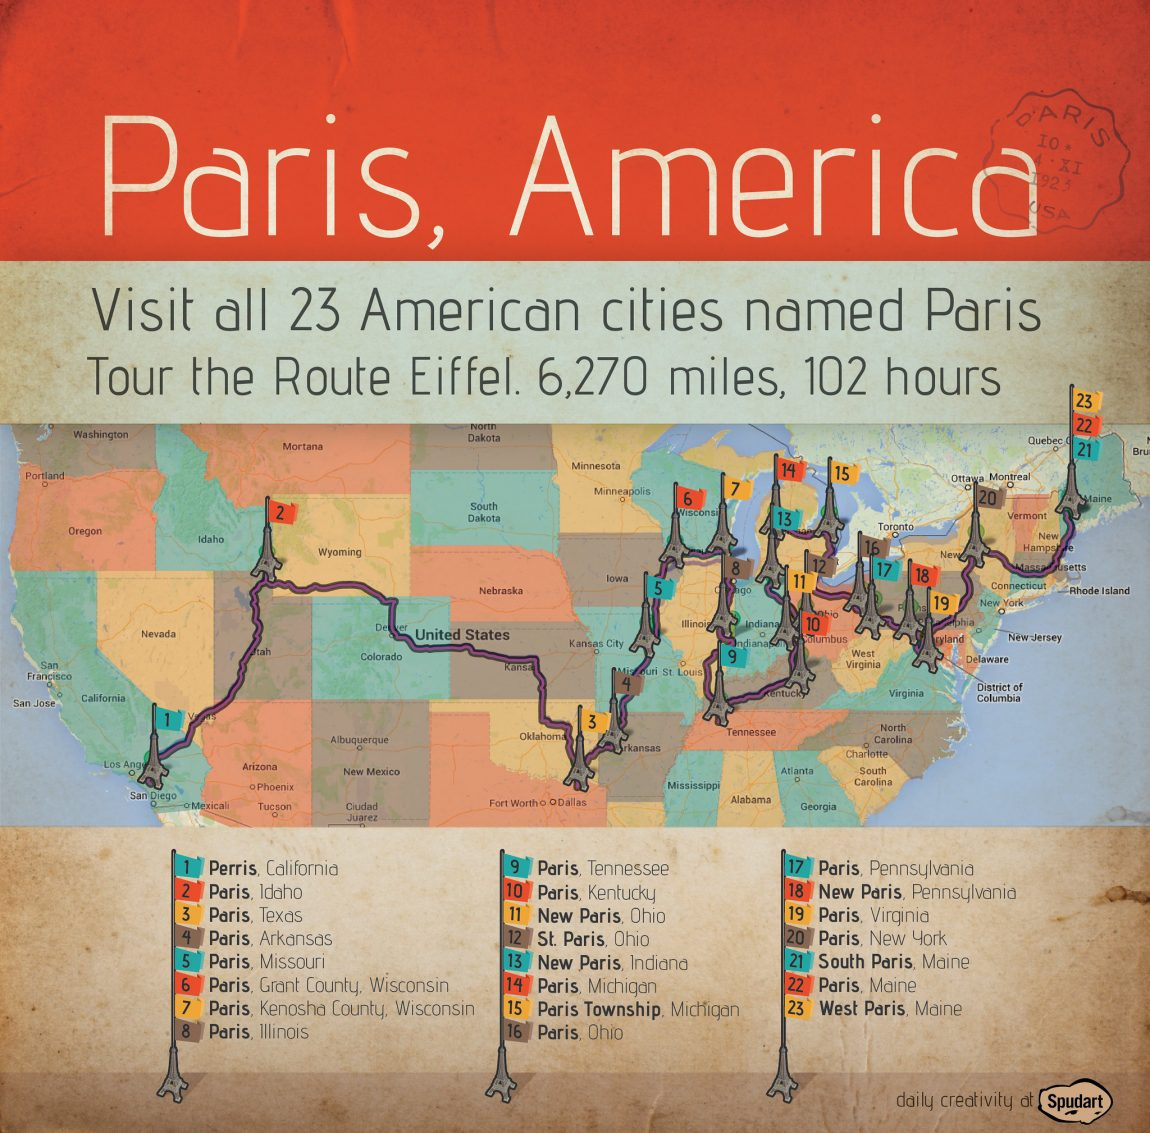 Paris, America: Visit all 23 American cities with the name Paris